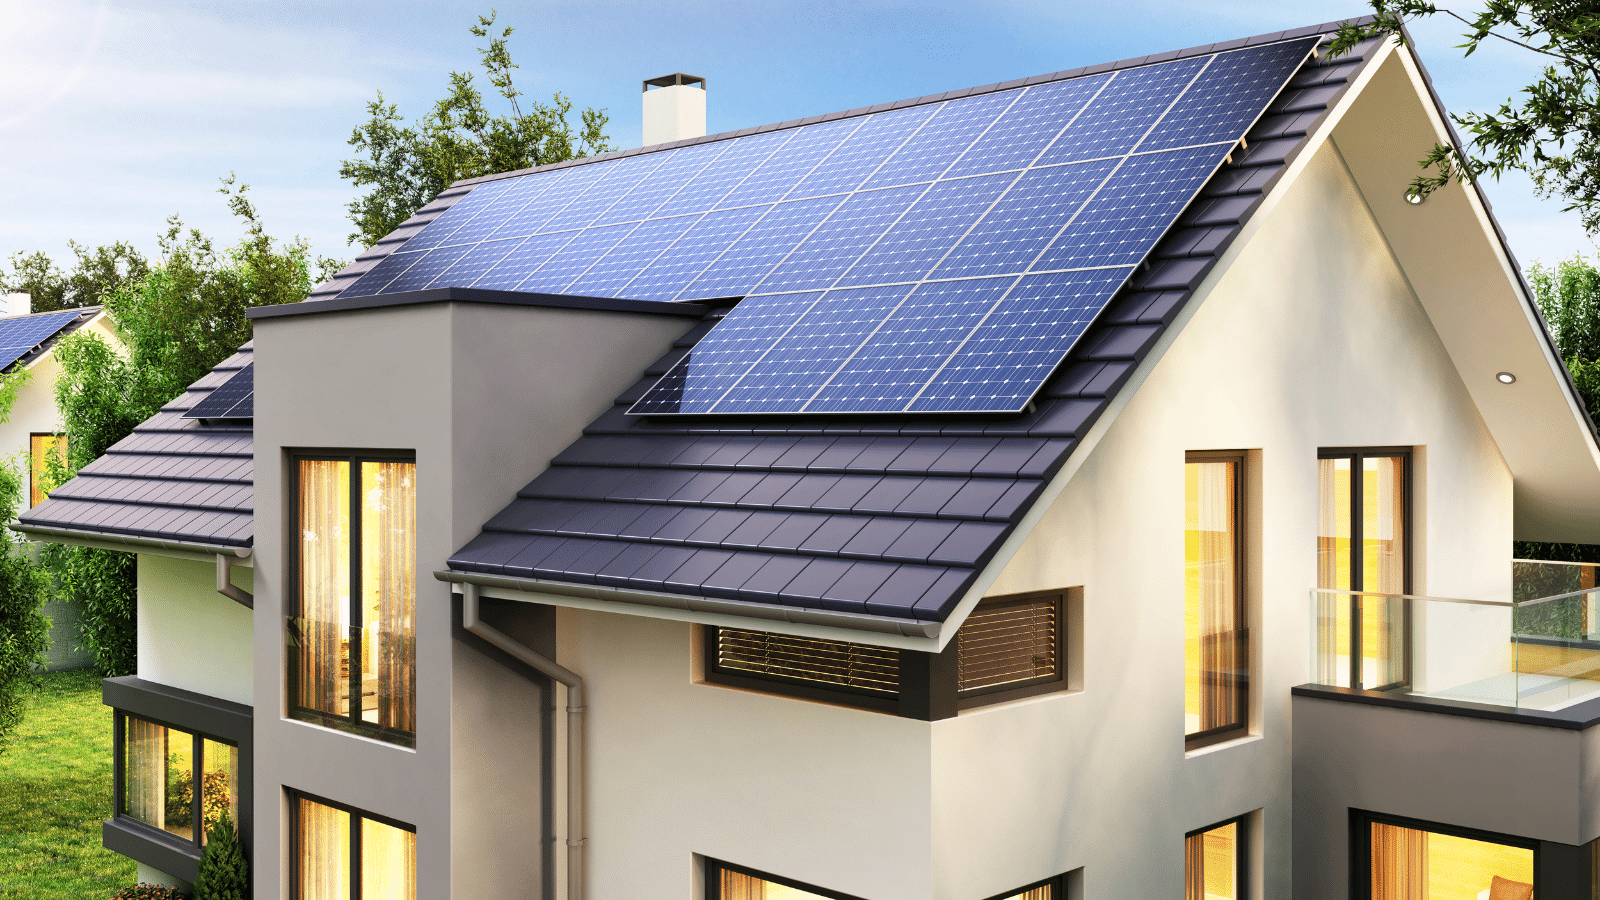 Why solar panels and energy storage are great for self-build homes - Home  Energy Scotland